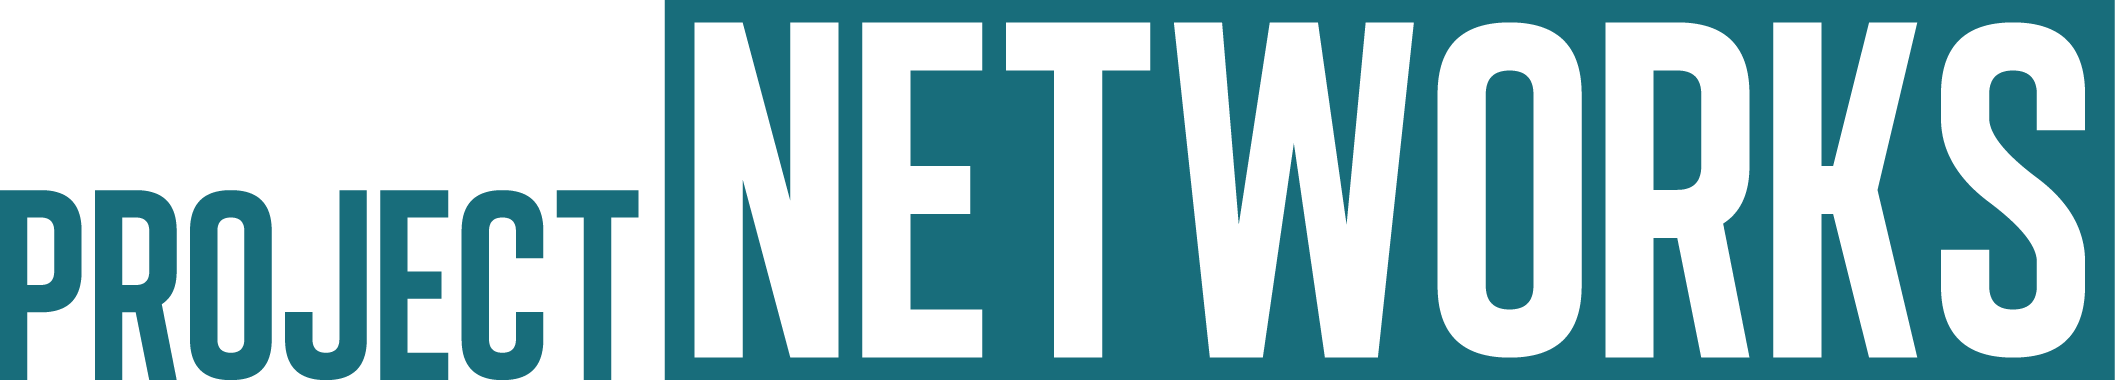 project networks logo